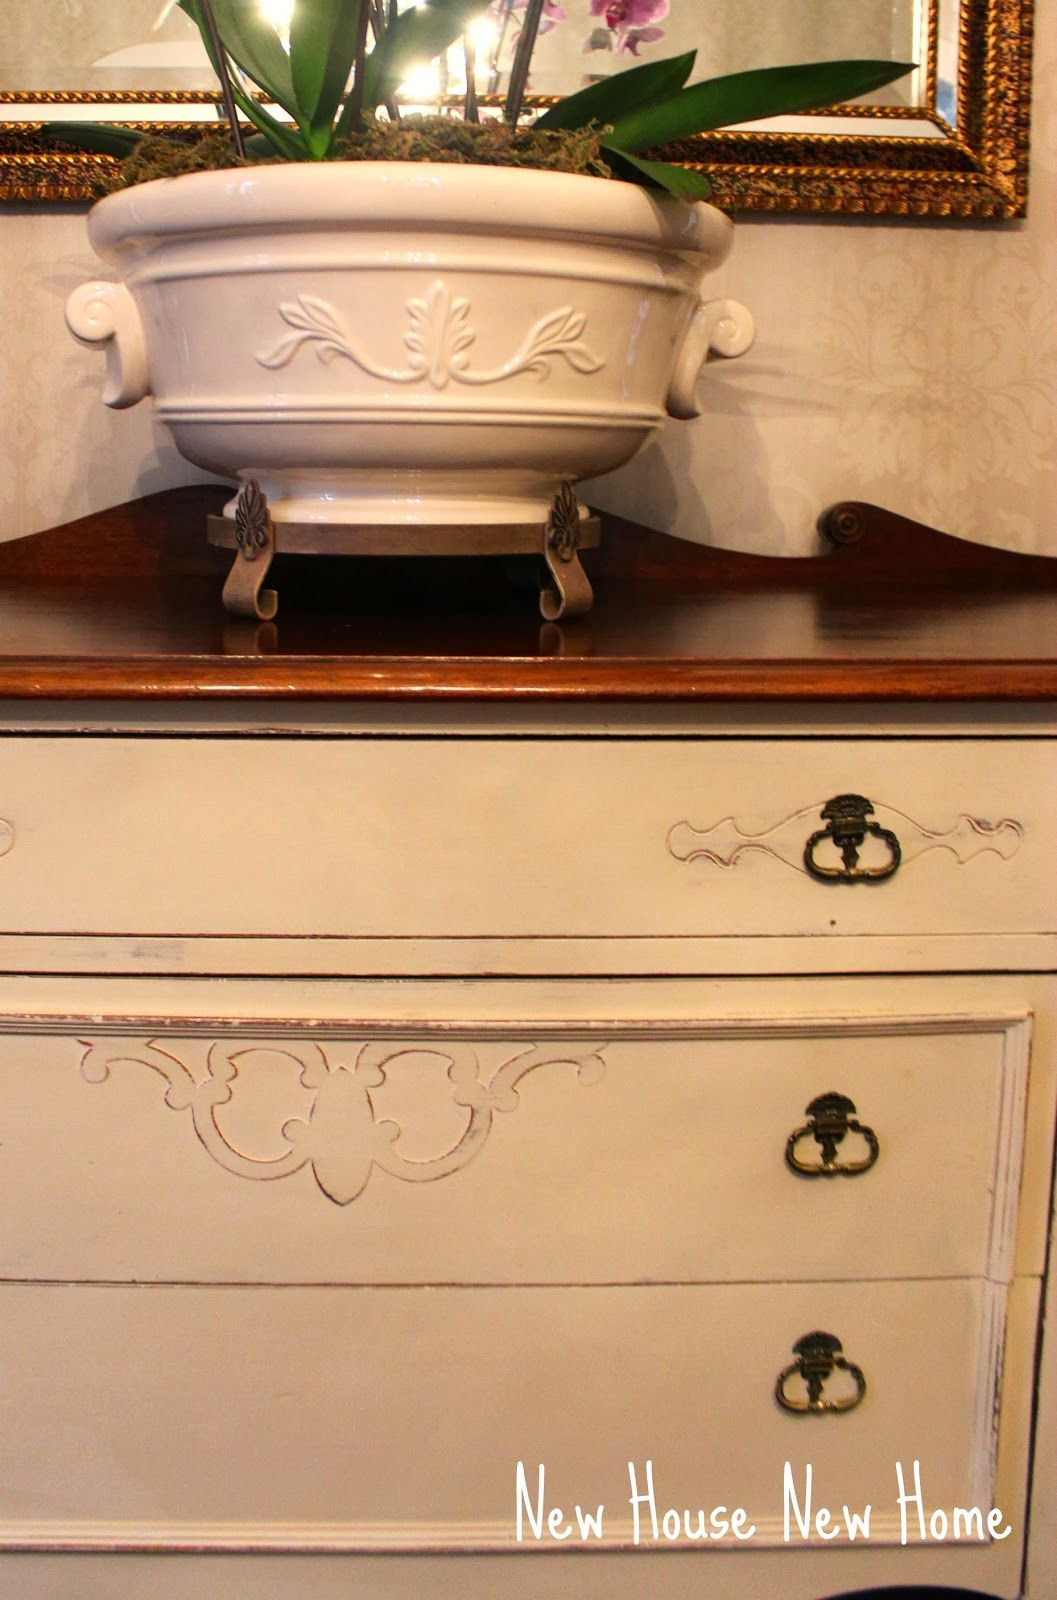 Sideboard repainted with ASCP Old Ochre #ASCP, #Old Ochre, #New House New Home http://www.newhousenewhomenewlife.com/2014/01/practice-what-you-preach.html